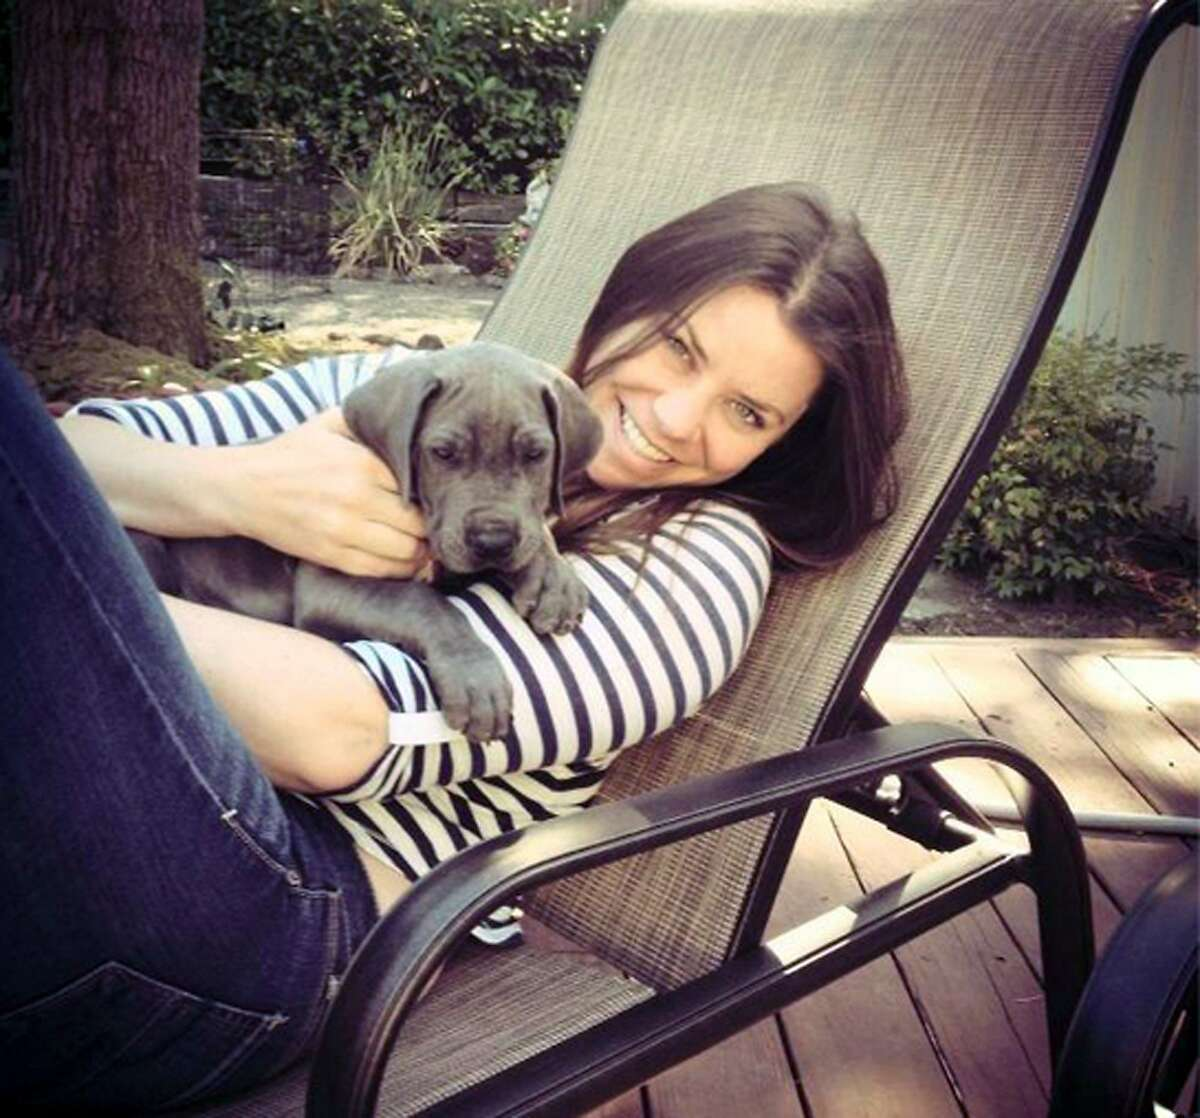 This undated photo provided by the Maynard family shows Brittany Maynard. The terminally ill California woman moved to Portland, Ore., to take advantage of Oregon's Death with Dignity Act, which was established in the 1990s. Maynard wants to pass a similar law in California and has turned to advocacy in her final days. (AP Photo/Maynard Family)